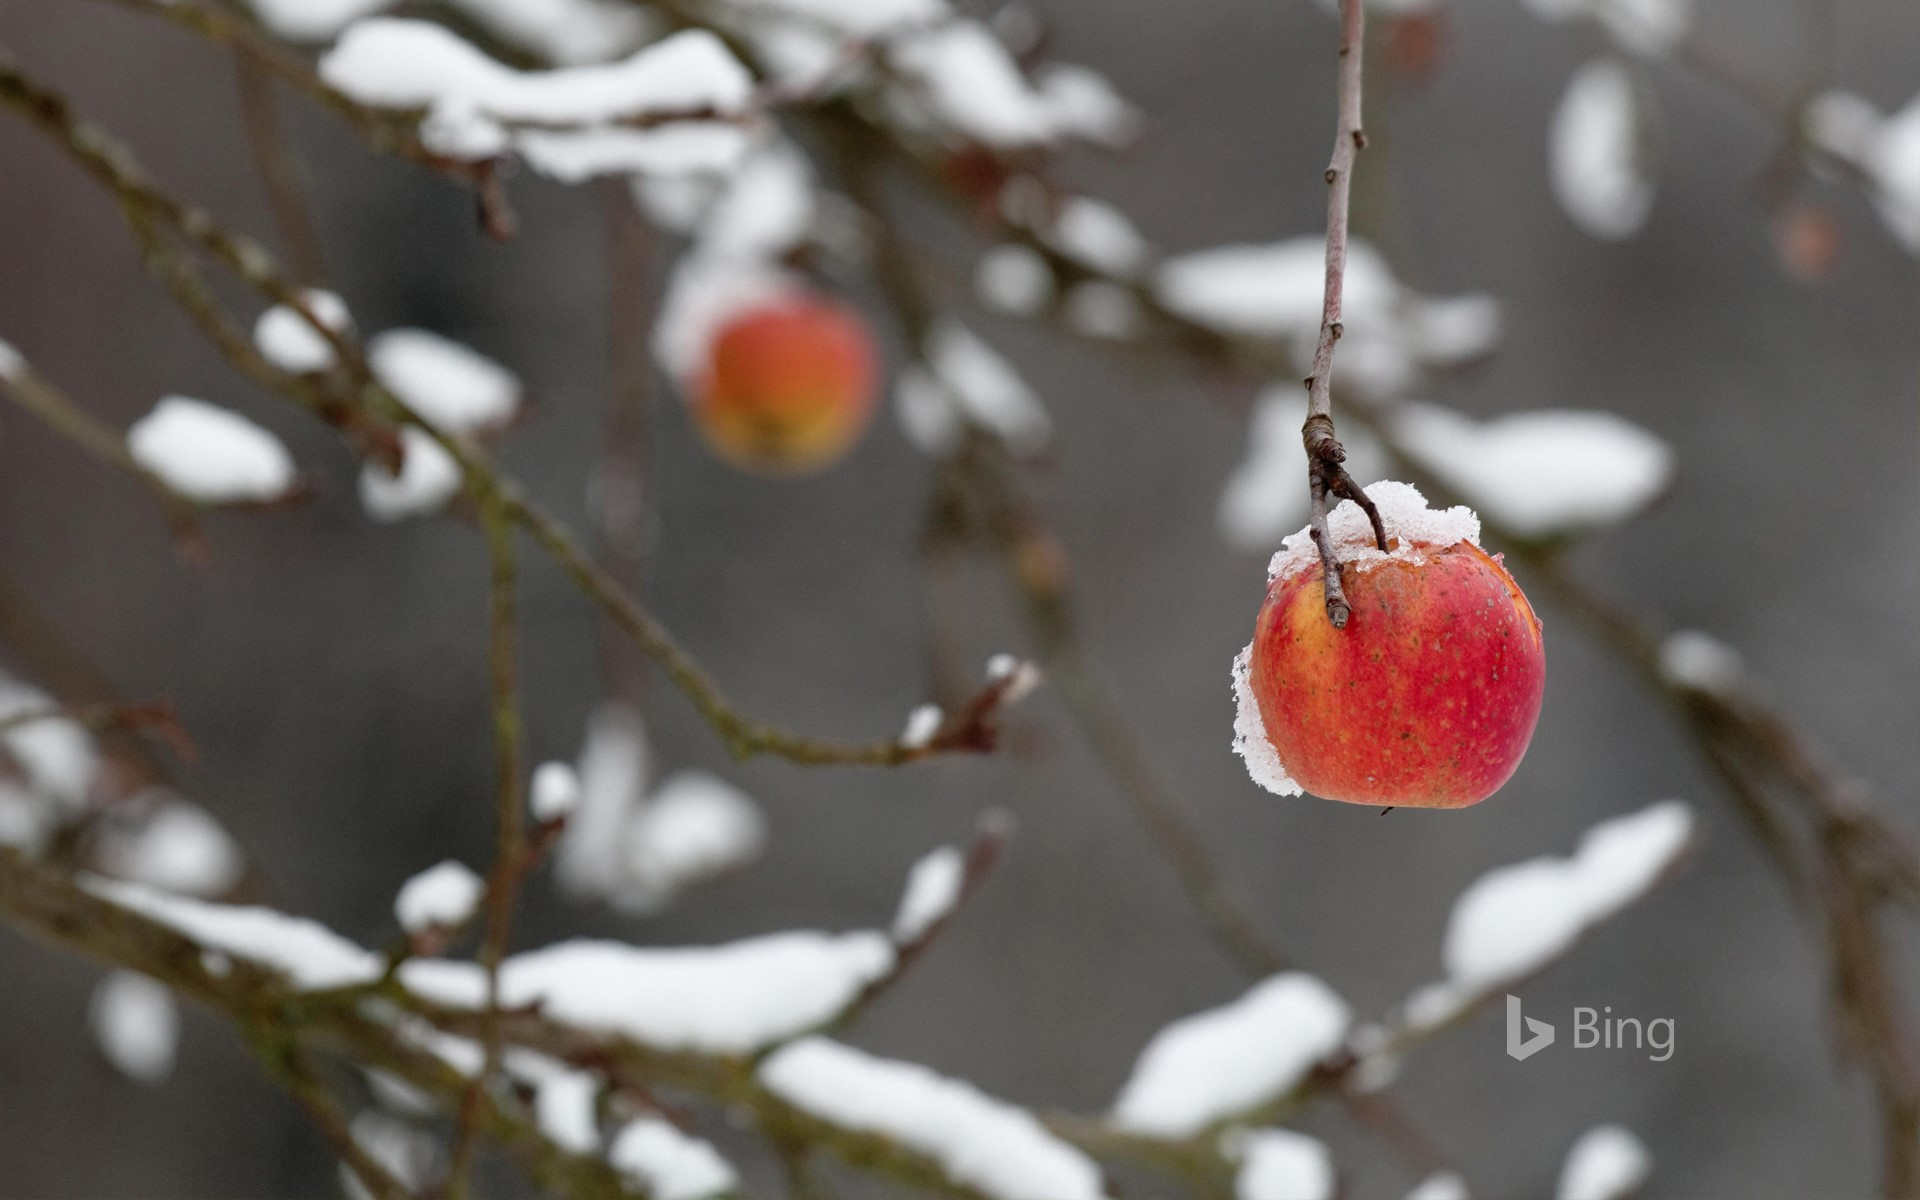 A red apple clings to a broken branch heavy with snow, Coburg, Bavaria, Germany